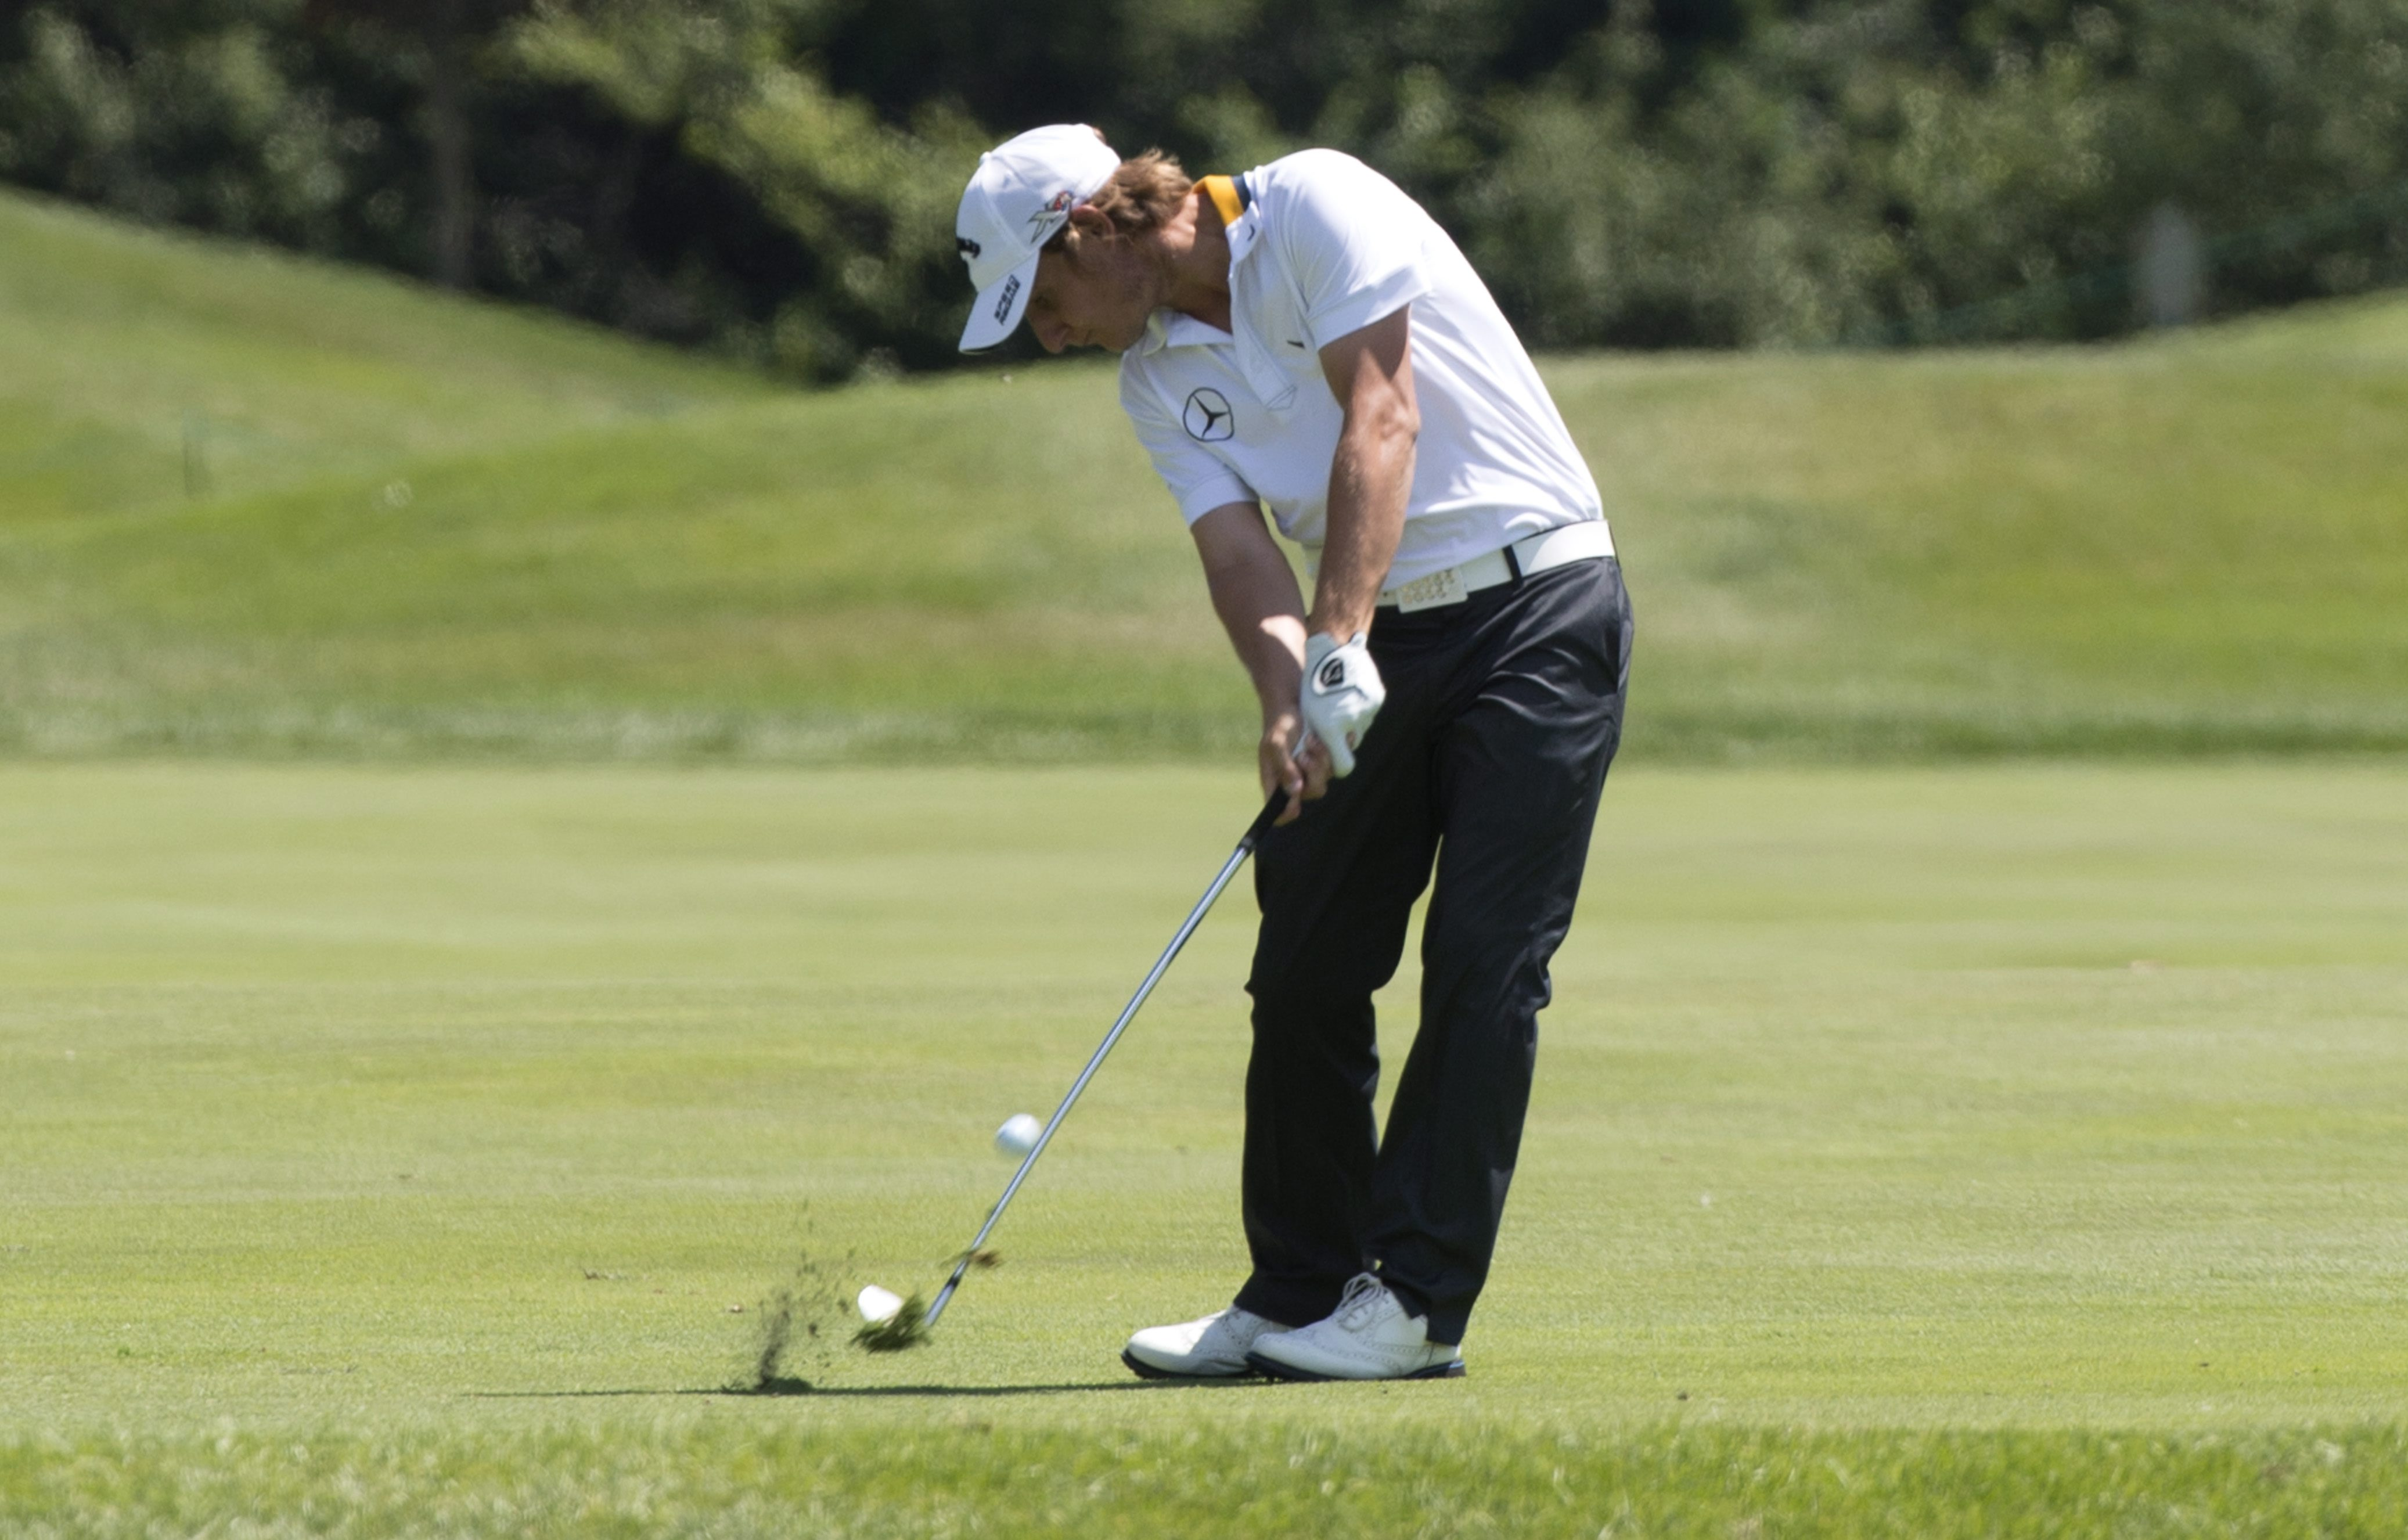 Emiliano Grillo from Argentina hits on the 9th fairway during first round of play at the Canadian Open golf tournament Thursday, July 23, 2015,  in Oakville, Ontario. (Paul Chiasson/The Canadian Press via AP)